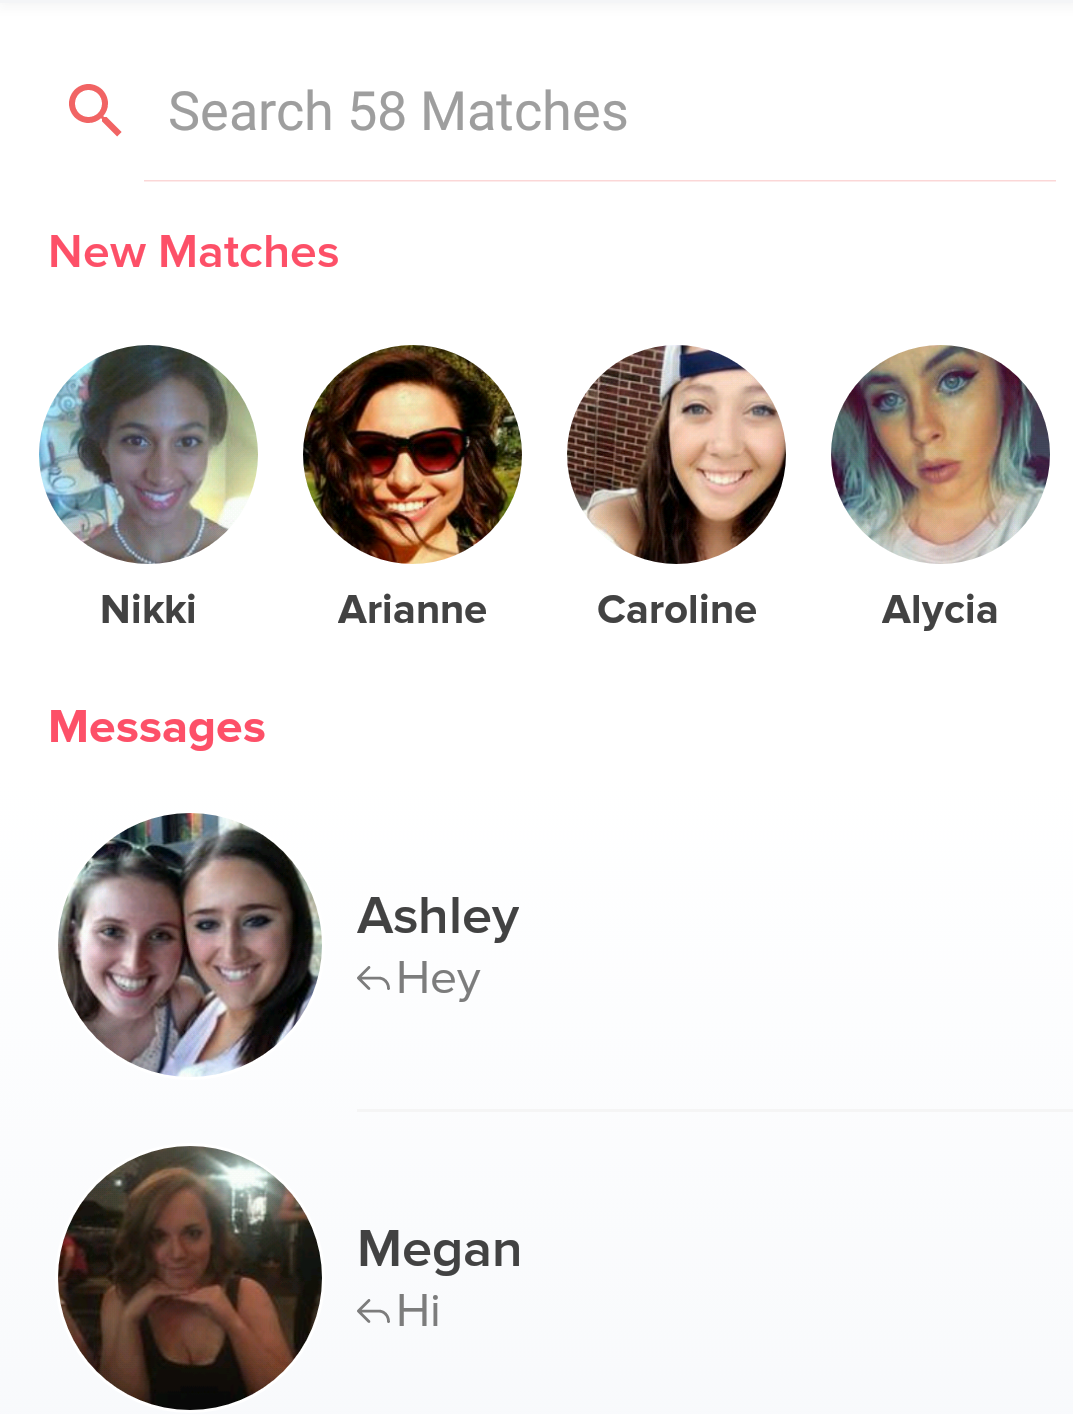 How many tinder matches do you have